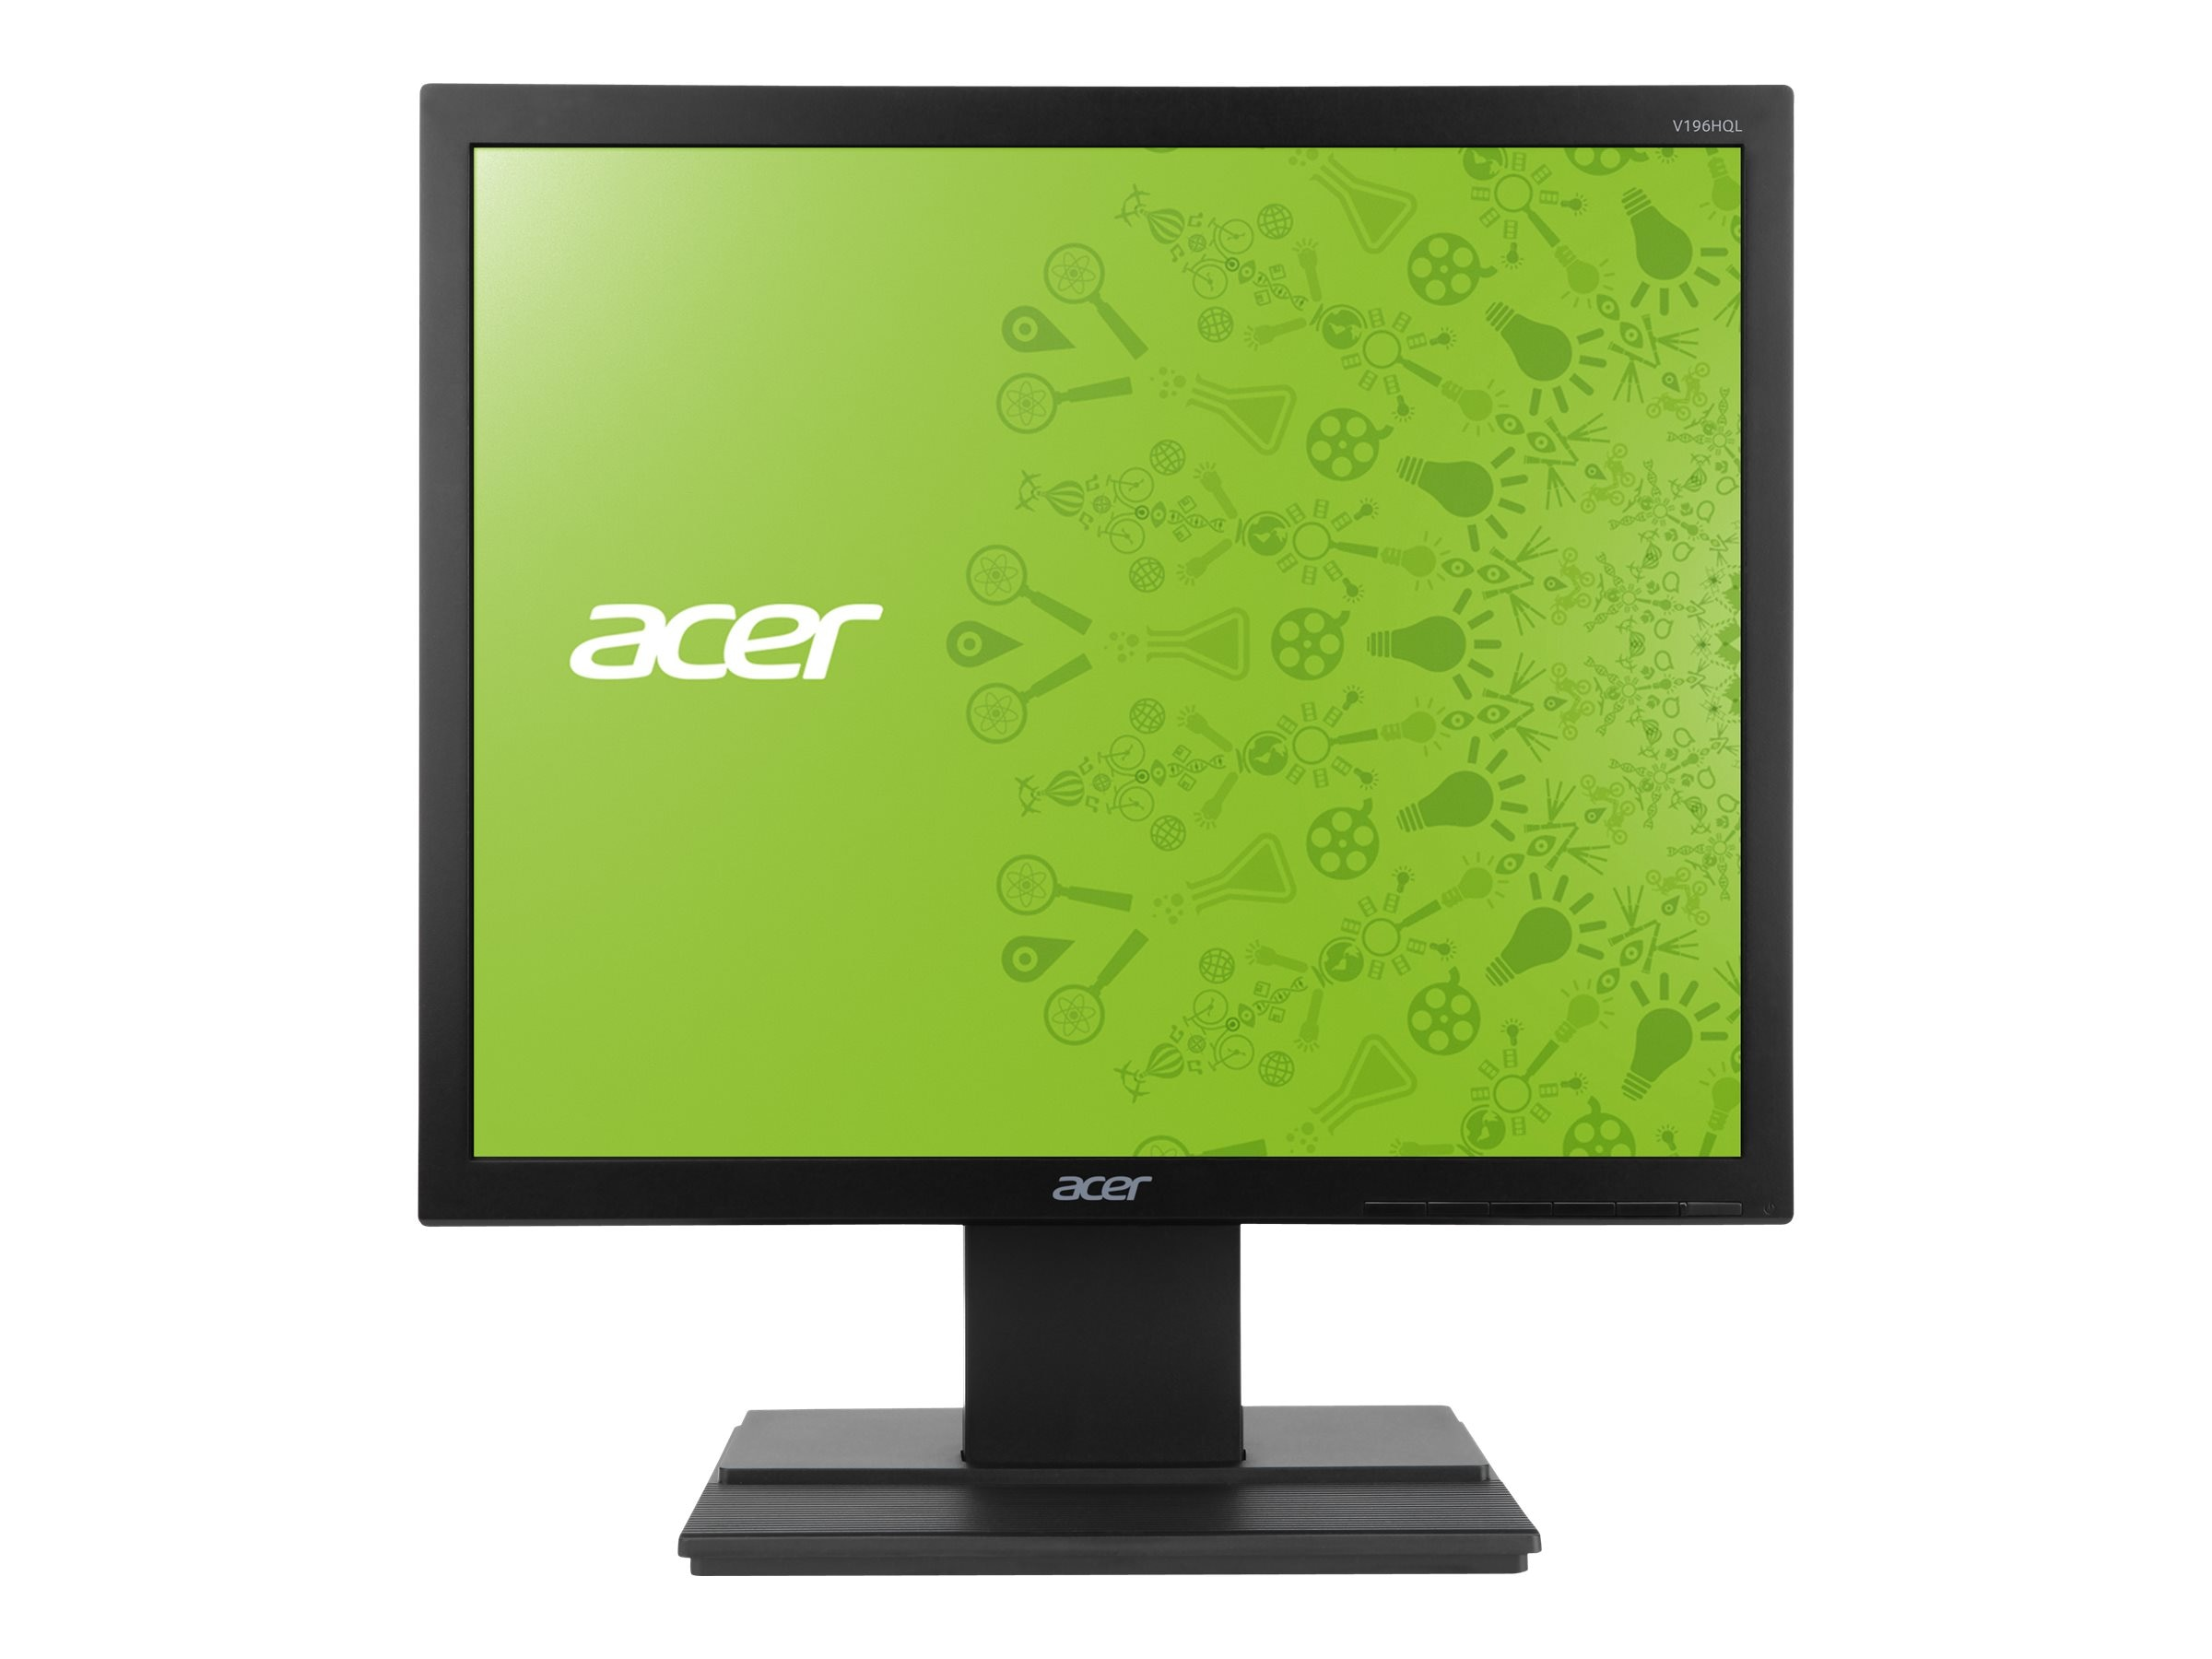 Acer 18.5 V196HQL AB LED-LCD Monitor, Black